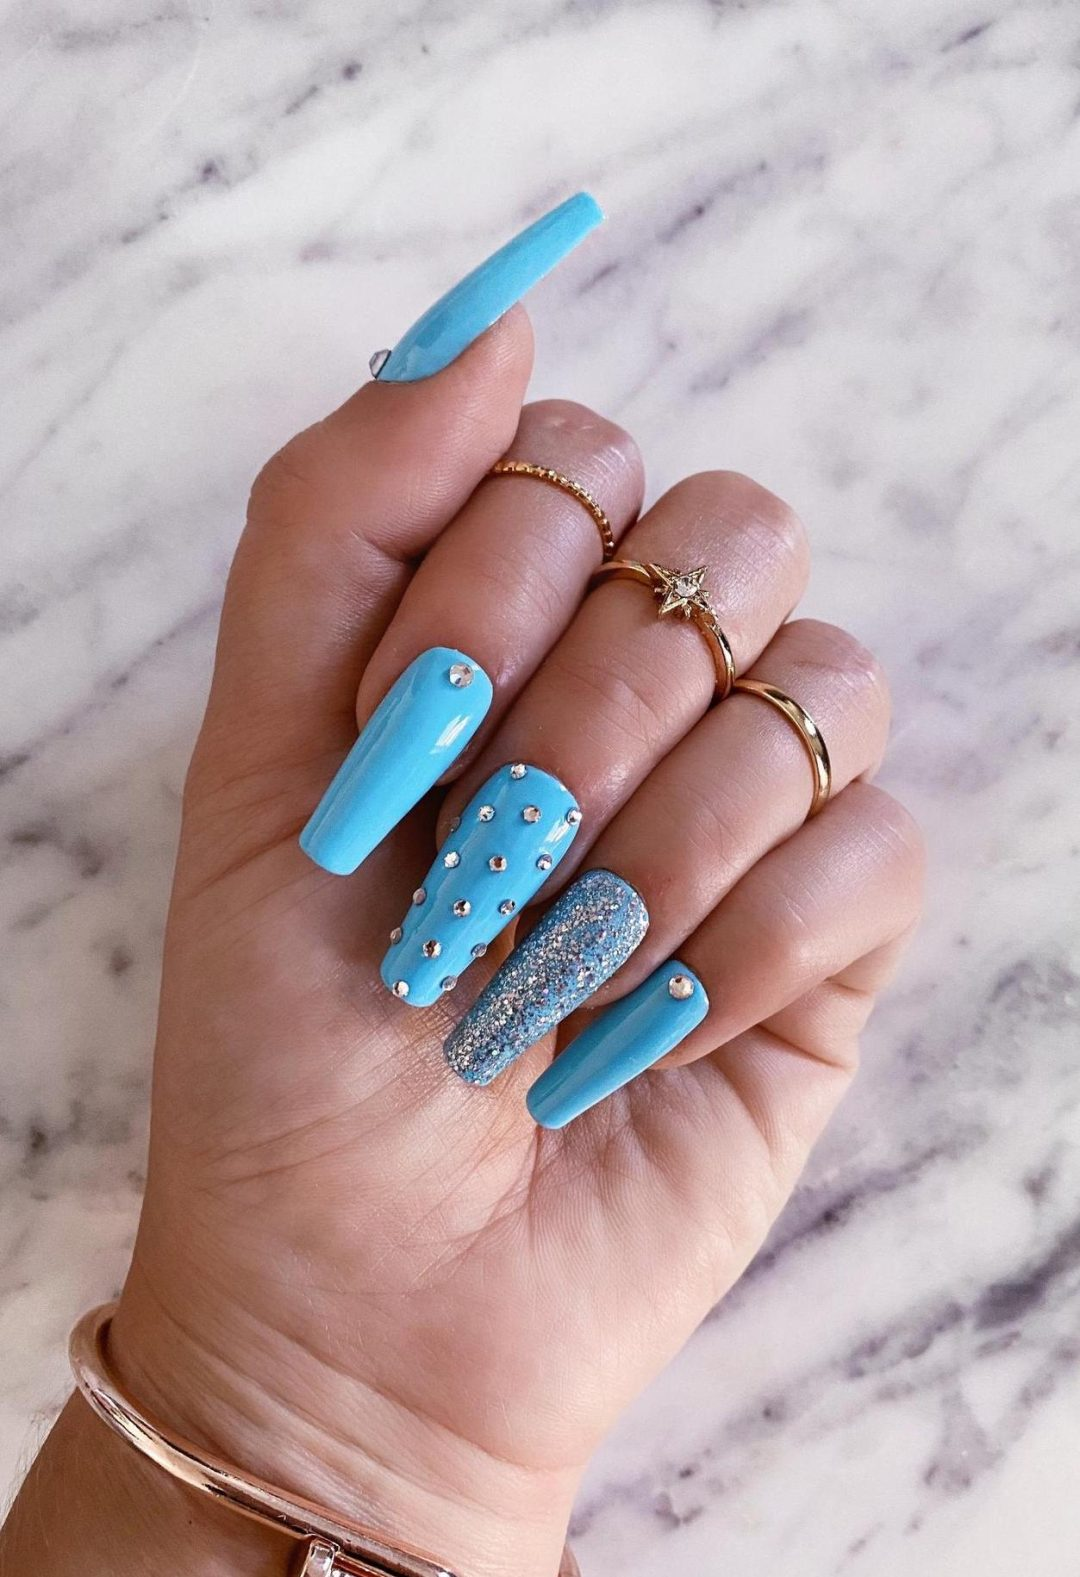 Baby blue nails with rhinestones and glitter